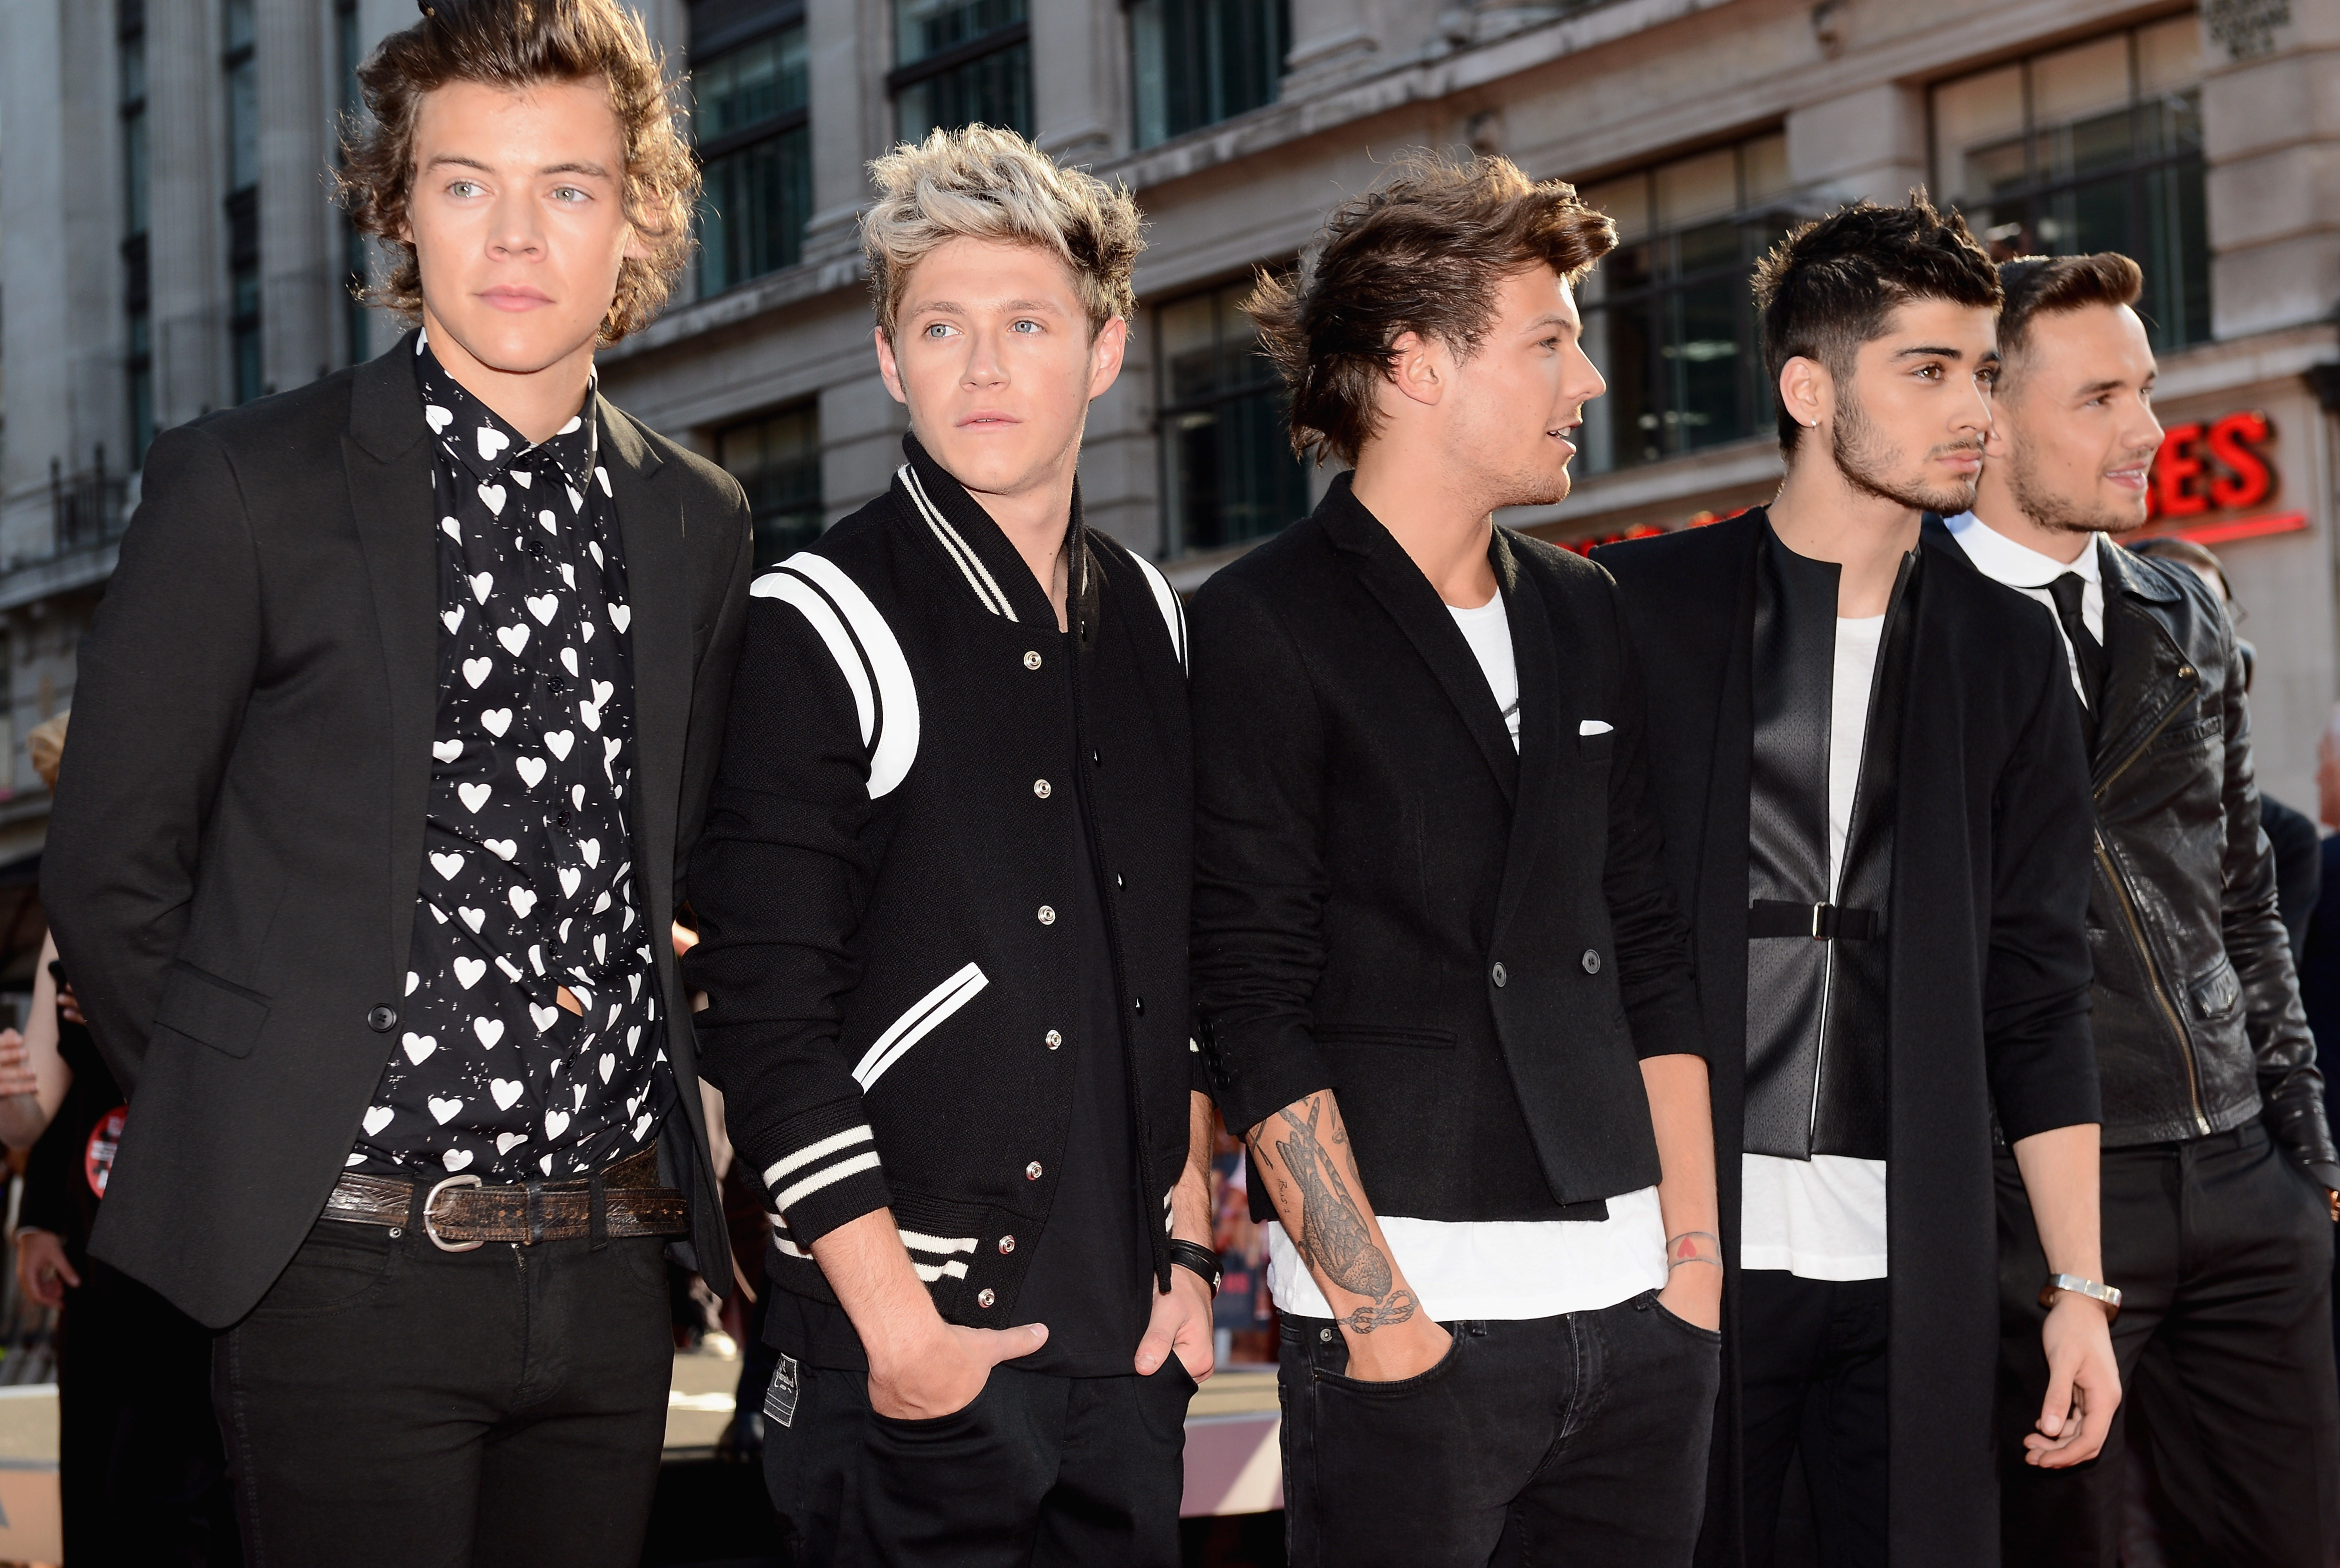 One Direction This Is Us Photos From The Premiere Huffpost